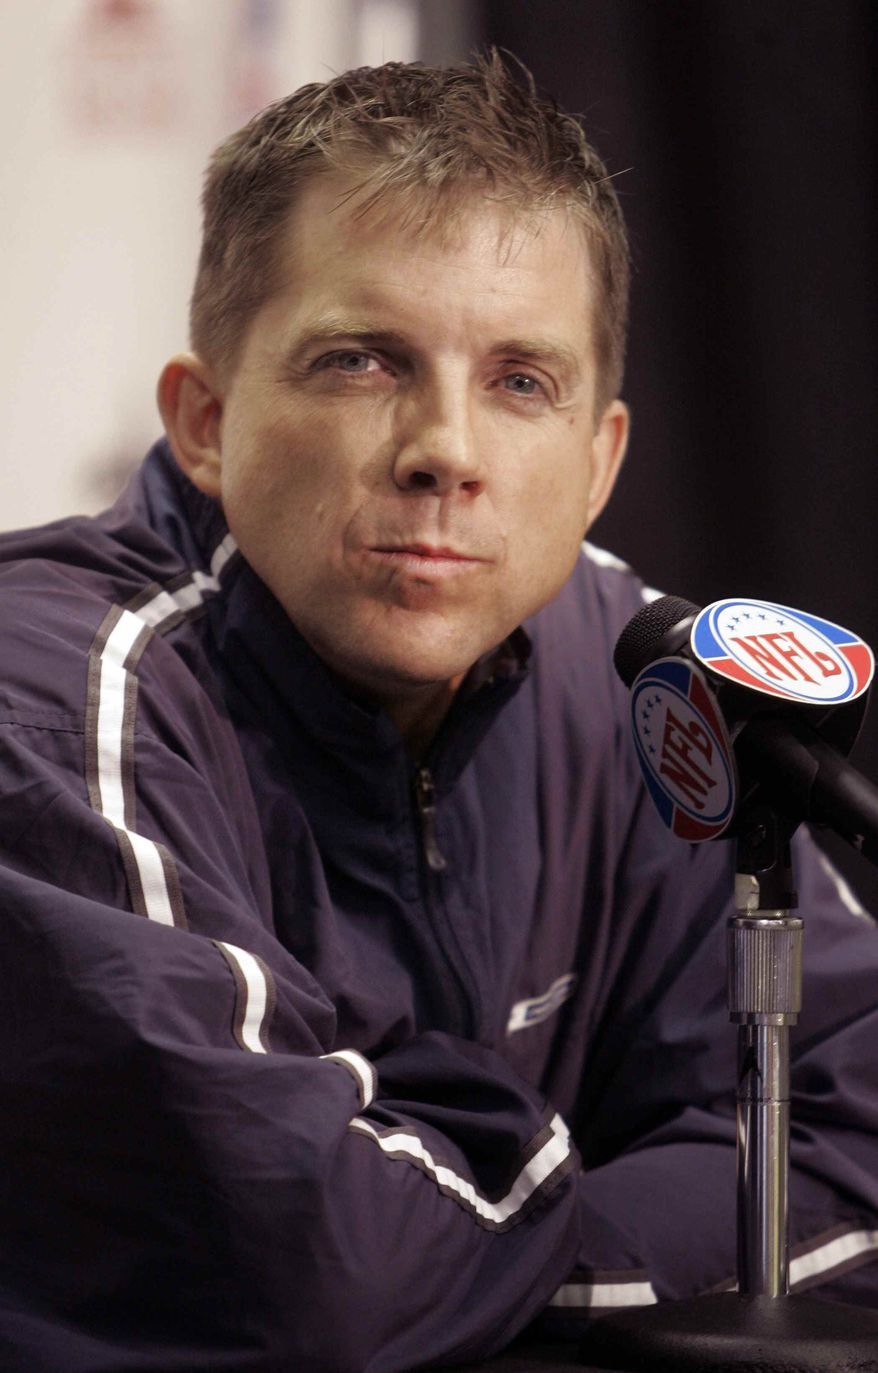 ** FILE ** This Jan. 15, 2007, file photo shows New Orleans Saints football coach Sean Payton listening to a question at a news conference in New Orleans. The suspended New Orleans Saints head coach has agreed in principle to a multiyear contract extension, according to two people familiar with the deal on Friday Dec. 28, 2012. (AP Photo/Bill Haber, File)